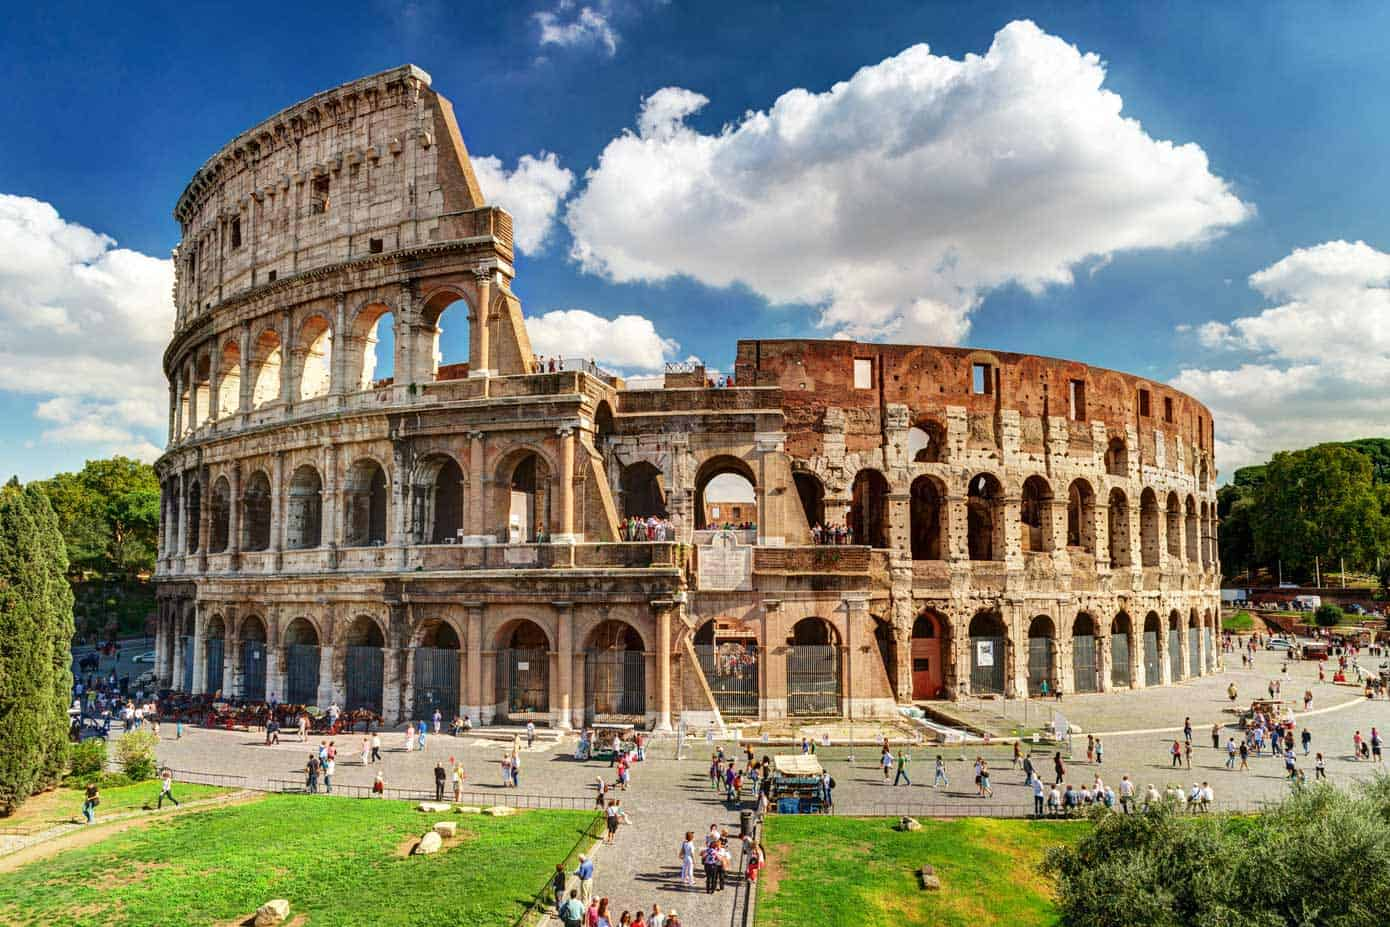 Ancient Roman Colosseum (Coliseum) in Rome, Italy.